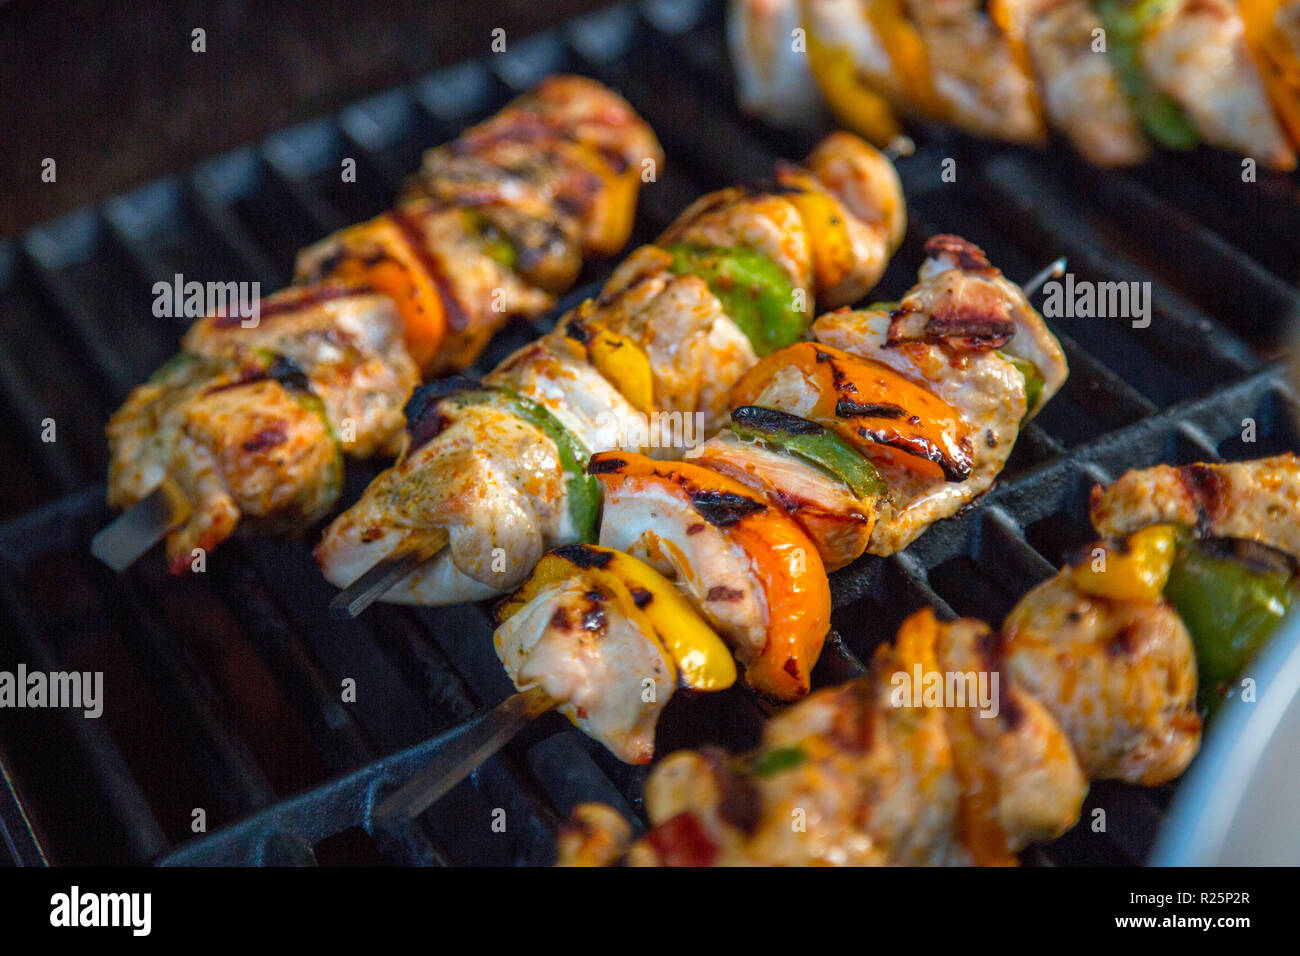 Meat and vegetables skewers on a grill, poultry meat and pepper pieces on a skewer, are grilled, - Stock Image